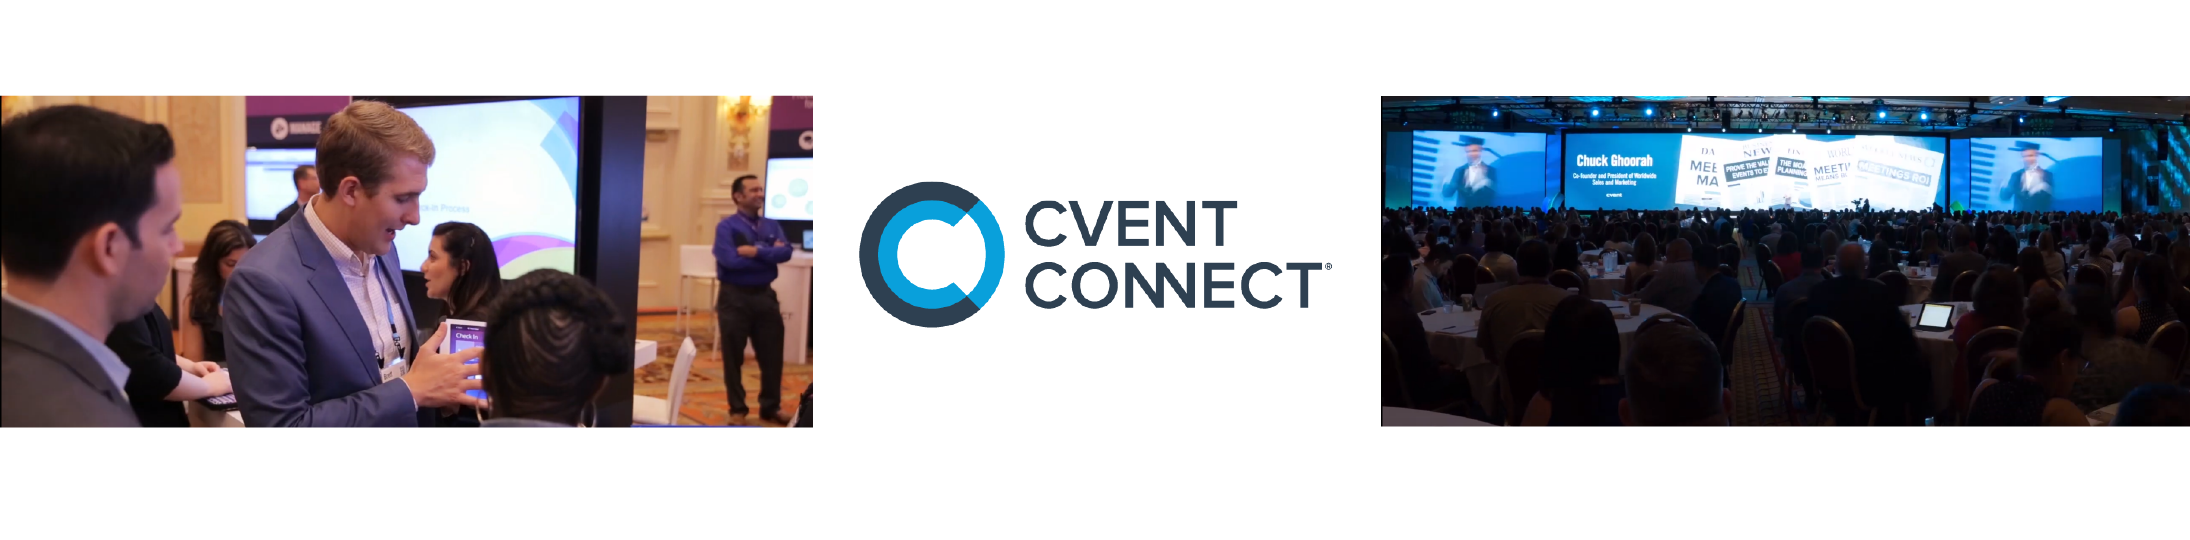 2016 CVENT Connect, Video Production, Film, Director, Producer, Video Producer, Corporate Video, Highlight Video, Sizzle Reel, Promo Video, Video Editing, Post-Production, Adobe Premiere, Editing, Conference, Trade Show, Exhibit, Expo, Marketing, Promotional Material, Recap, Las Vegas Video Production, Video Production Las Vegas, Las Vegas, Nevada, Video Production Chicago, Chicago Video Production, New York City Video Production, Video Production New York City, NYC Video Production, Video Production NYC, Orlando Video Production, Video Production Orlando, Los Angeles Video Production, Video Production Los Angeles, Orlando Florida, Chicago Illinois, Los Angeles California, New York City New York